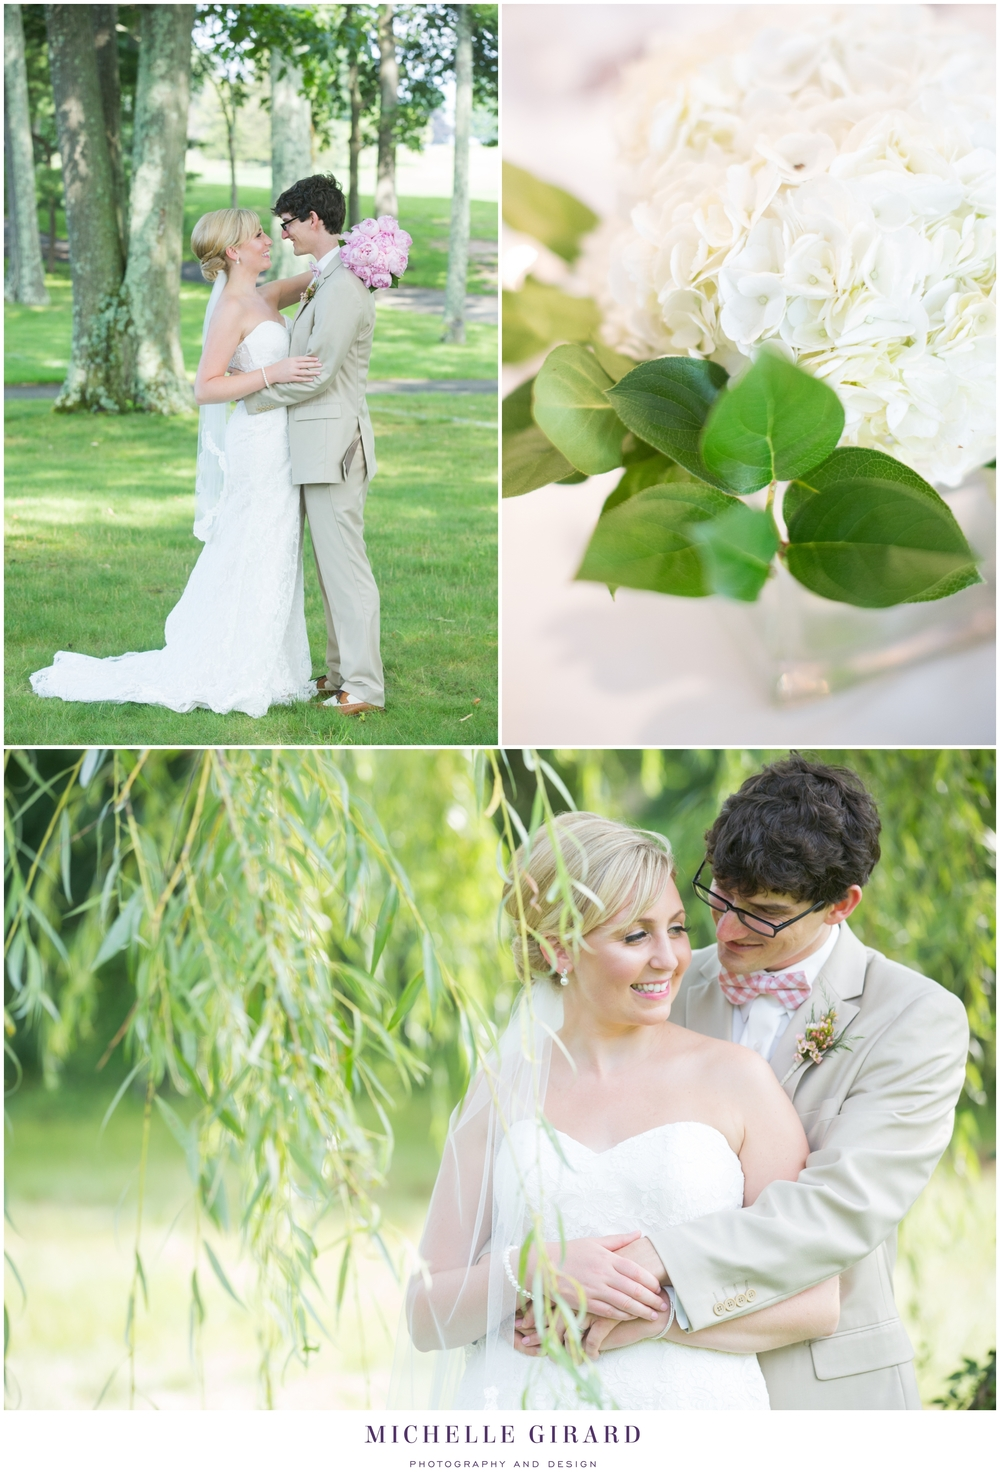 FarmsCountryClub_SummerWedding_MichelleGirardPhotography13.jpg